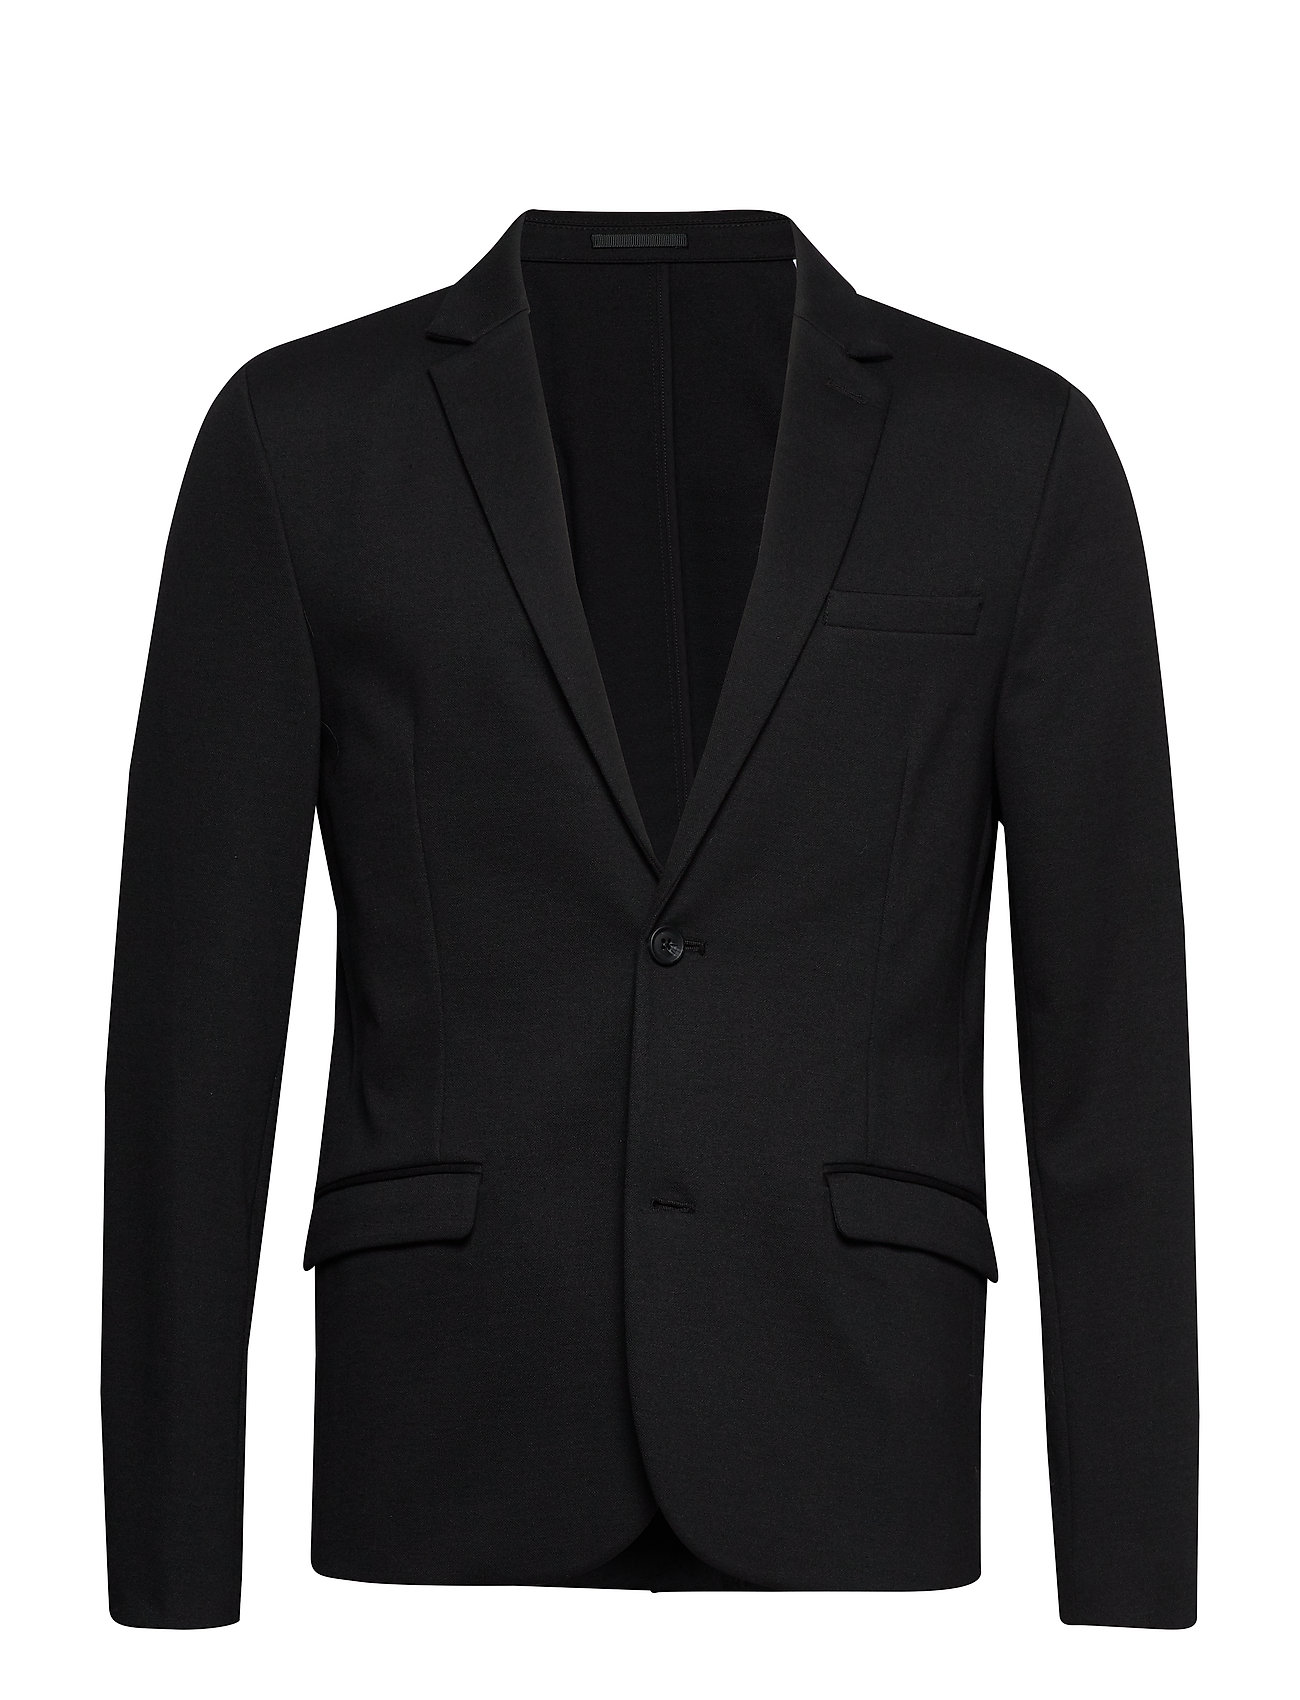 Image of Superflex Knitted Blazer Blazer Jakke Sort Lindbergh (3224974347)